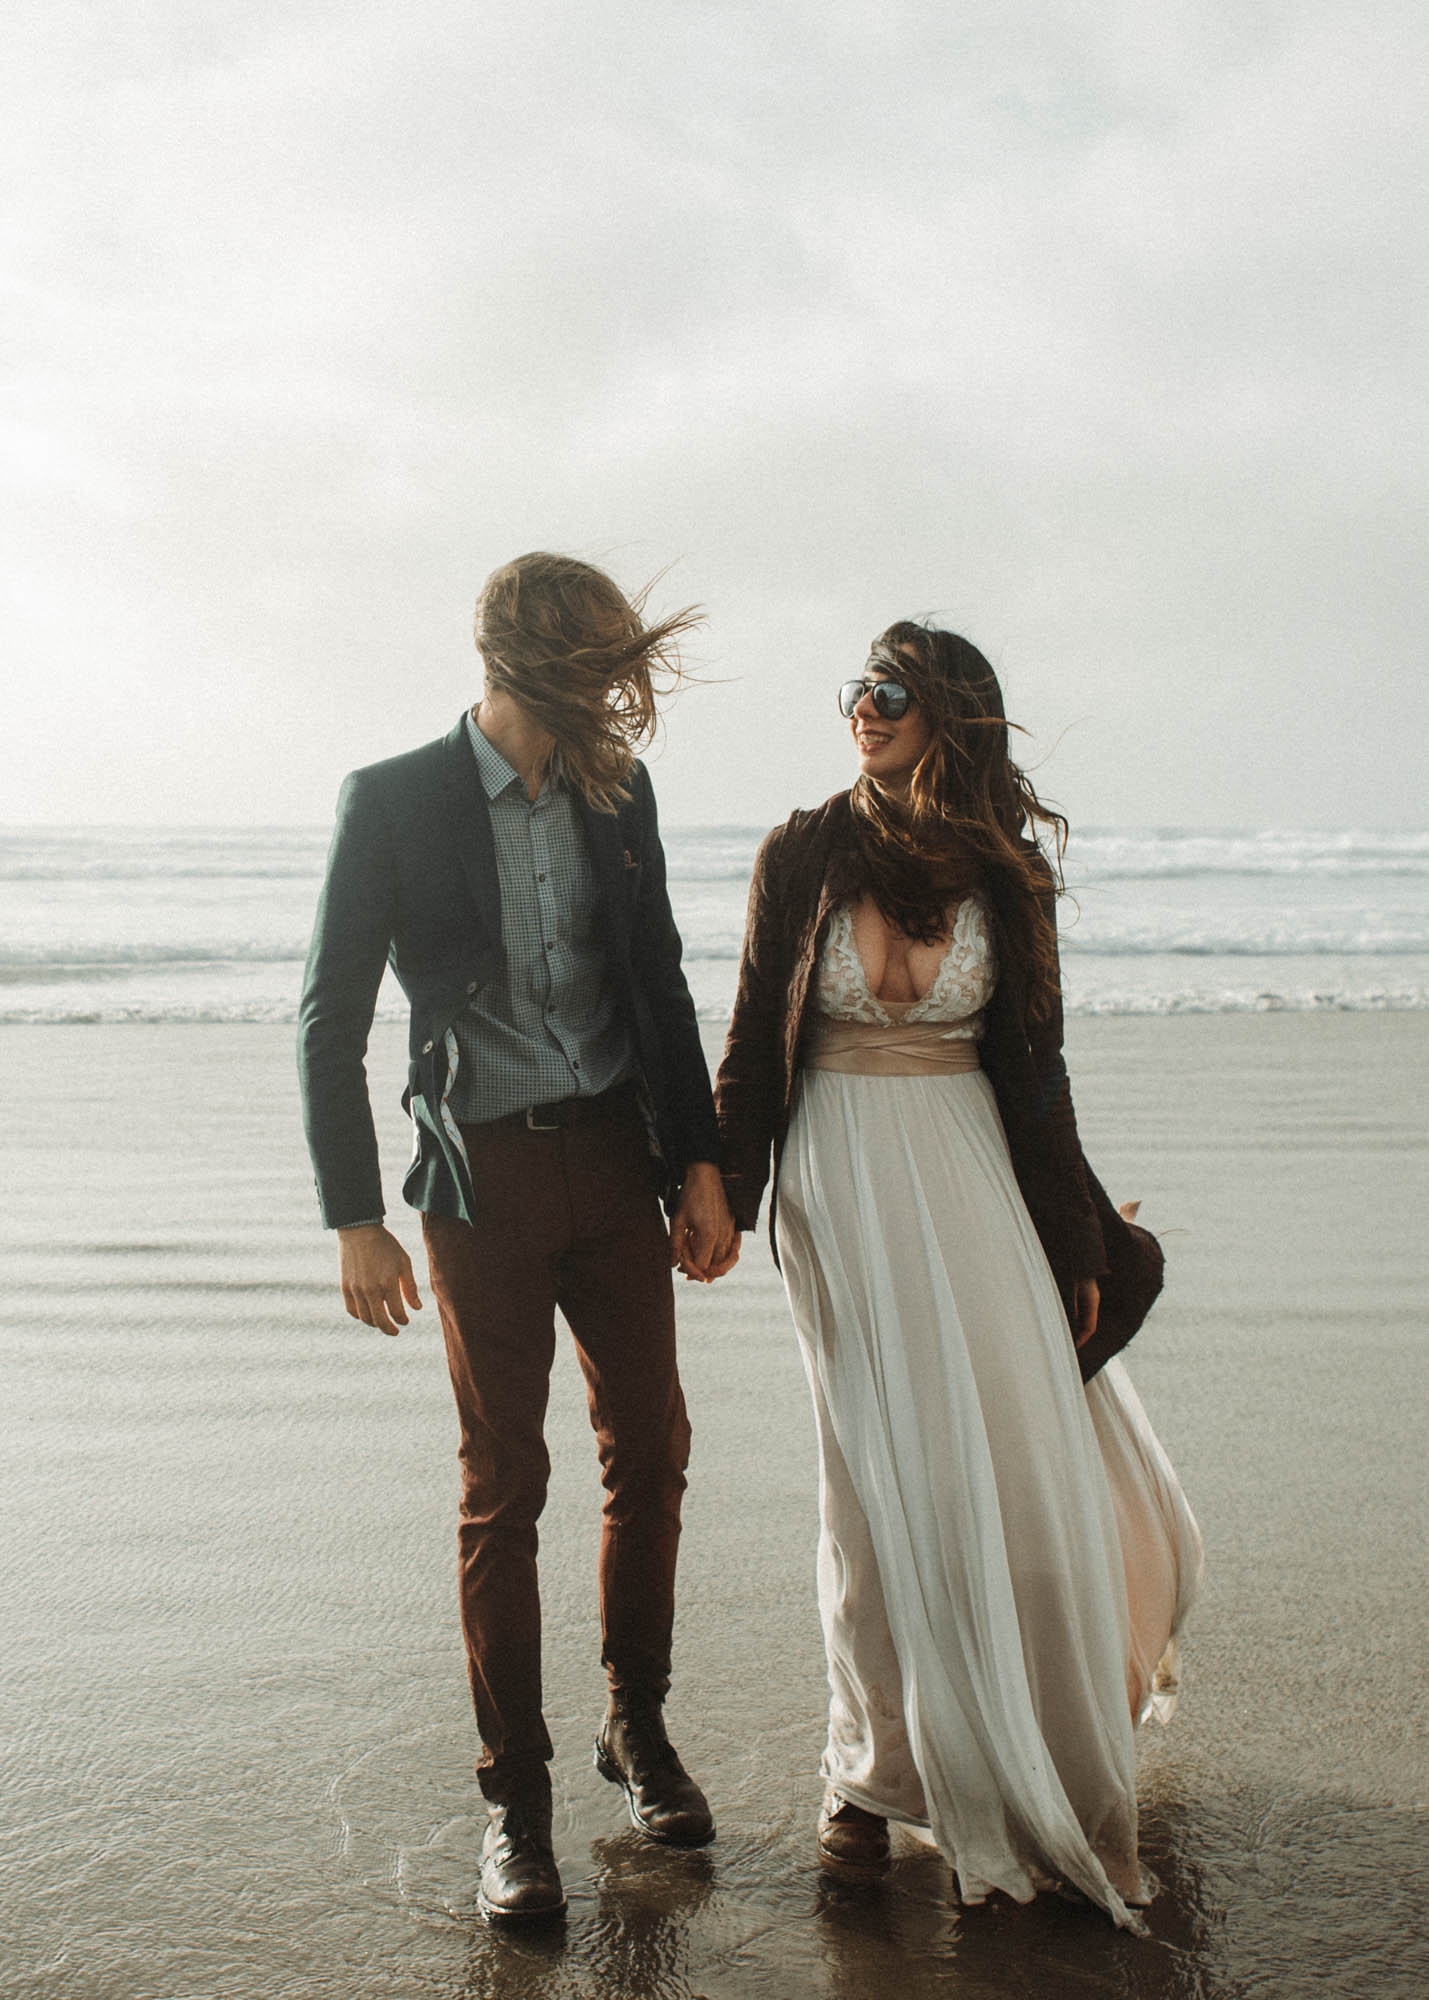 Best bride and groom flowy hair styles for beach wedding and elopement